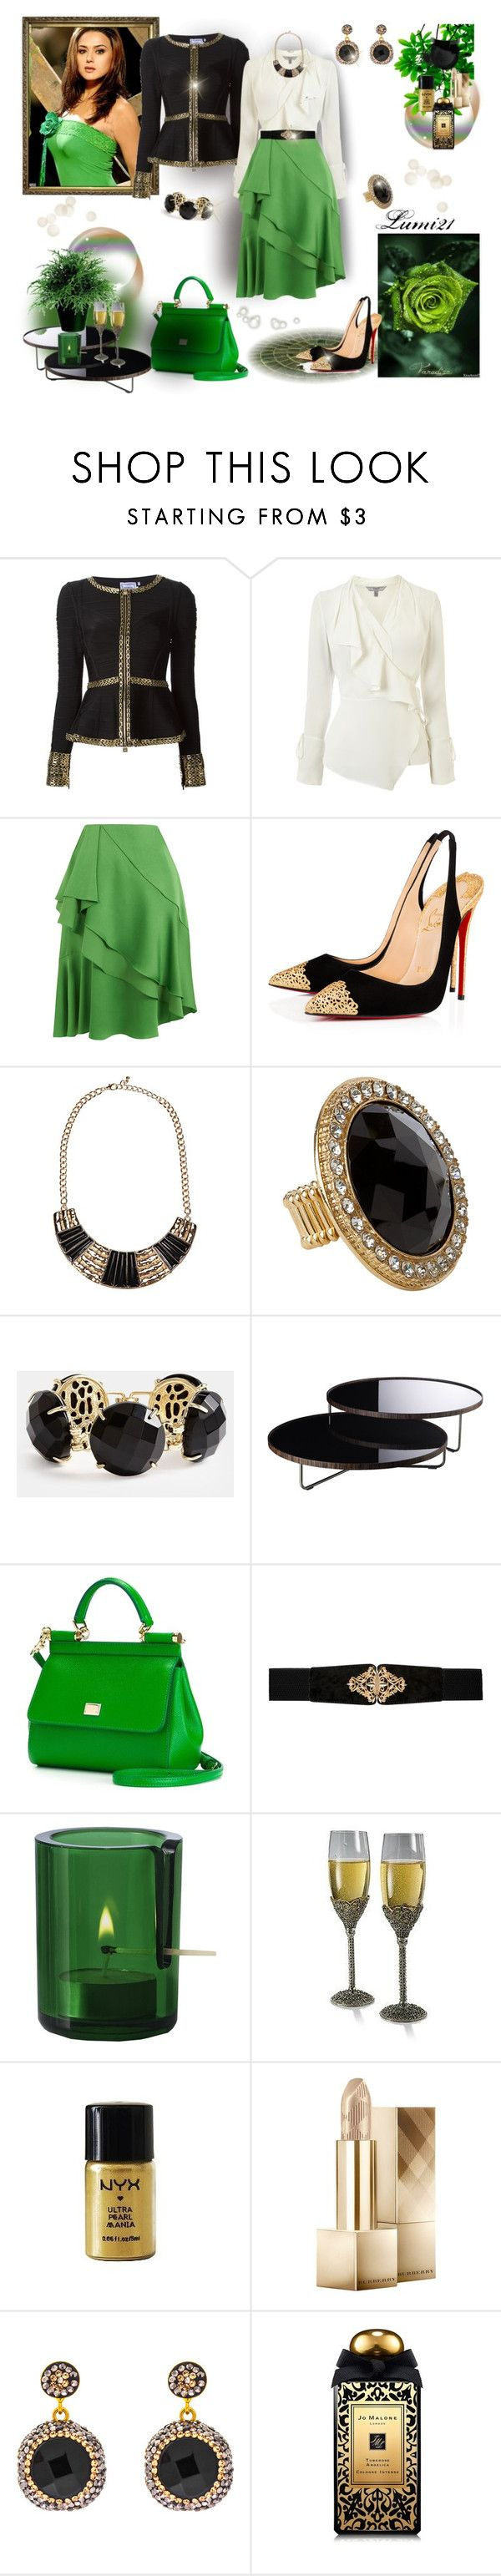 """green"" by lumi-21 ❤ liked on Polyvore featuring Hervé Léger, Lanvin, Christian Louboutin, Kendra Scott, Modloft, Dolce&Gabbana, Forever New, Muuto, Burberry and Soru Jewellery"